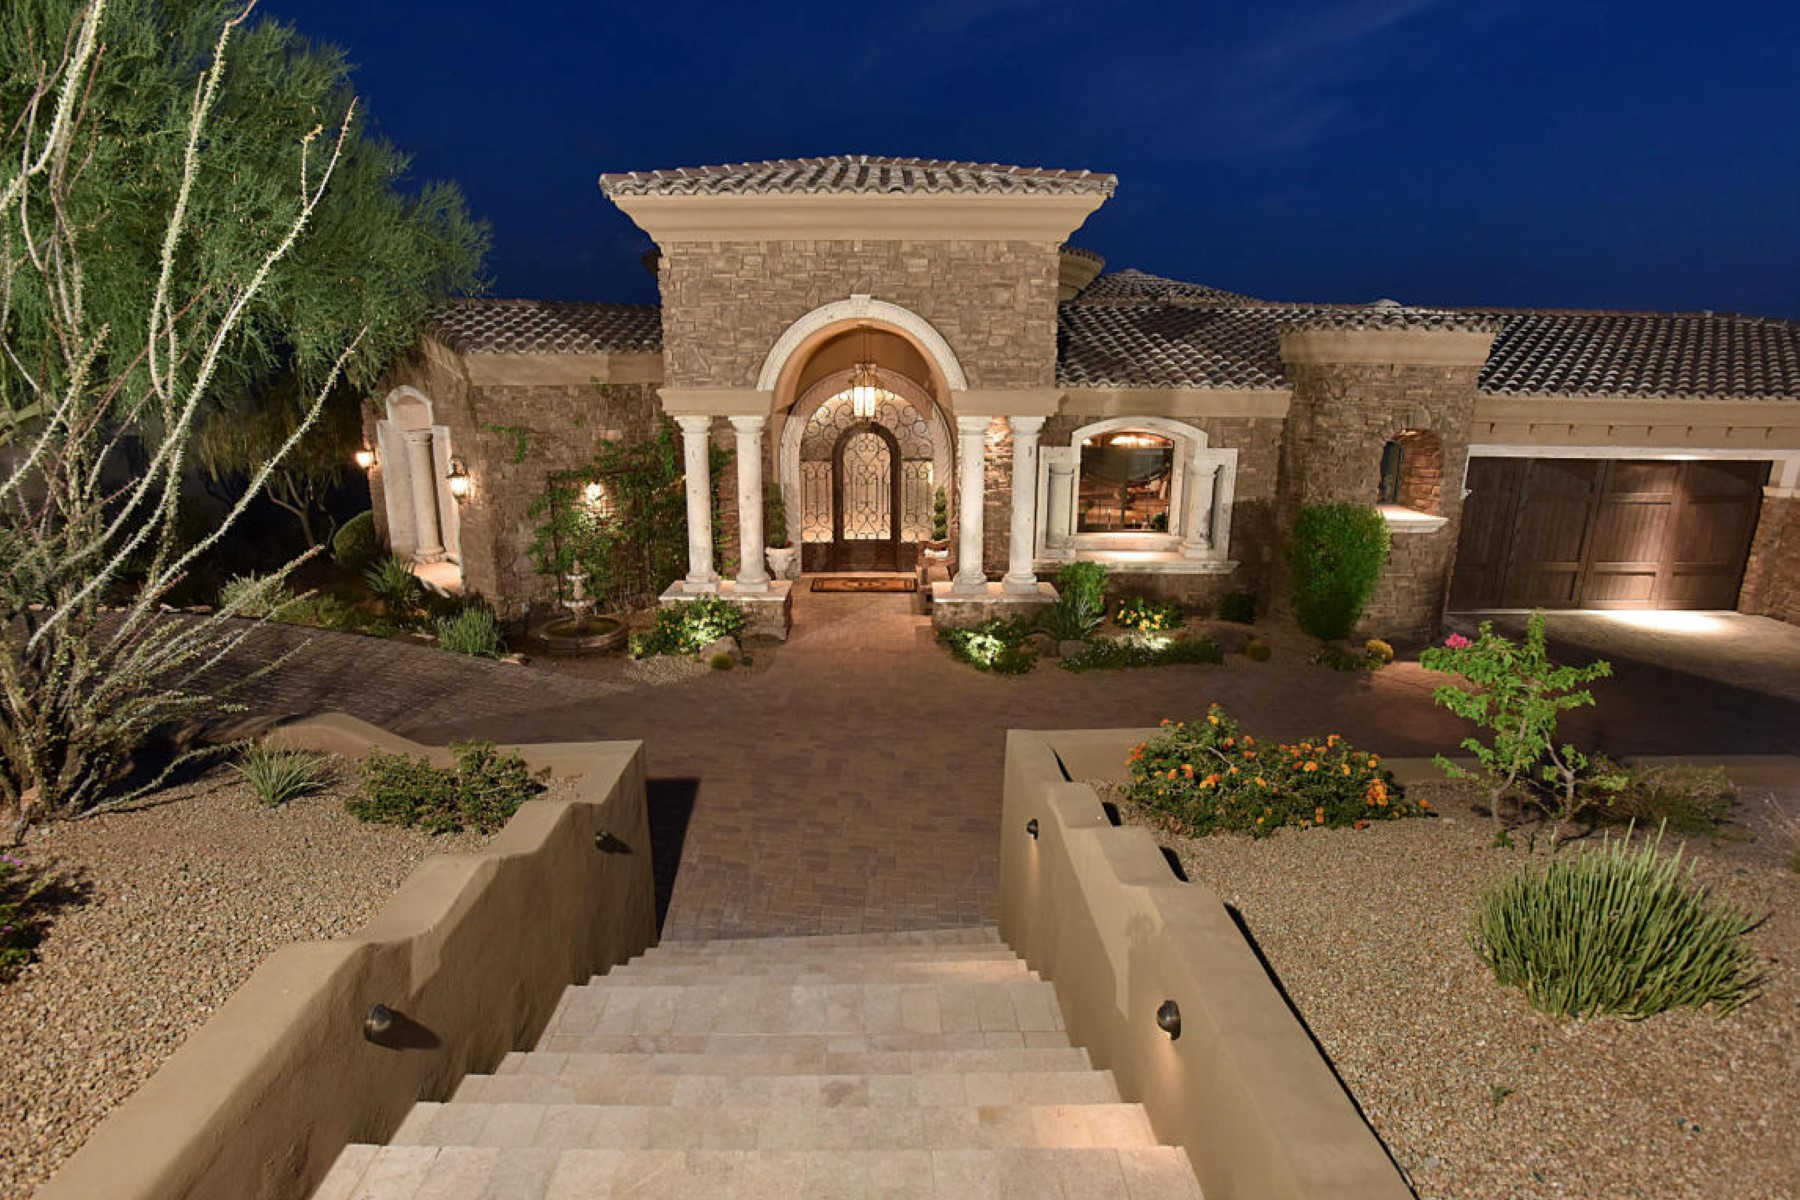 Property For Sale at Magnificent Private Estate Sits On 4 Acres In Gated North Scottsdale Community